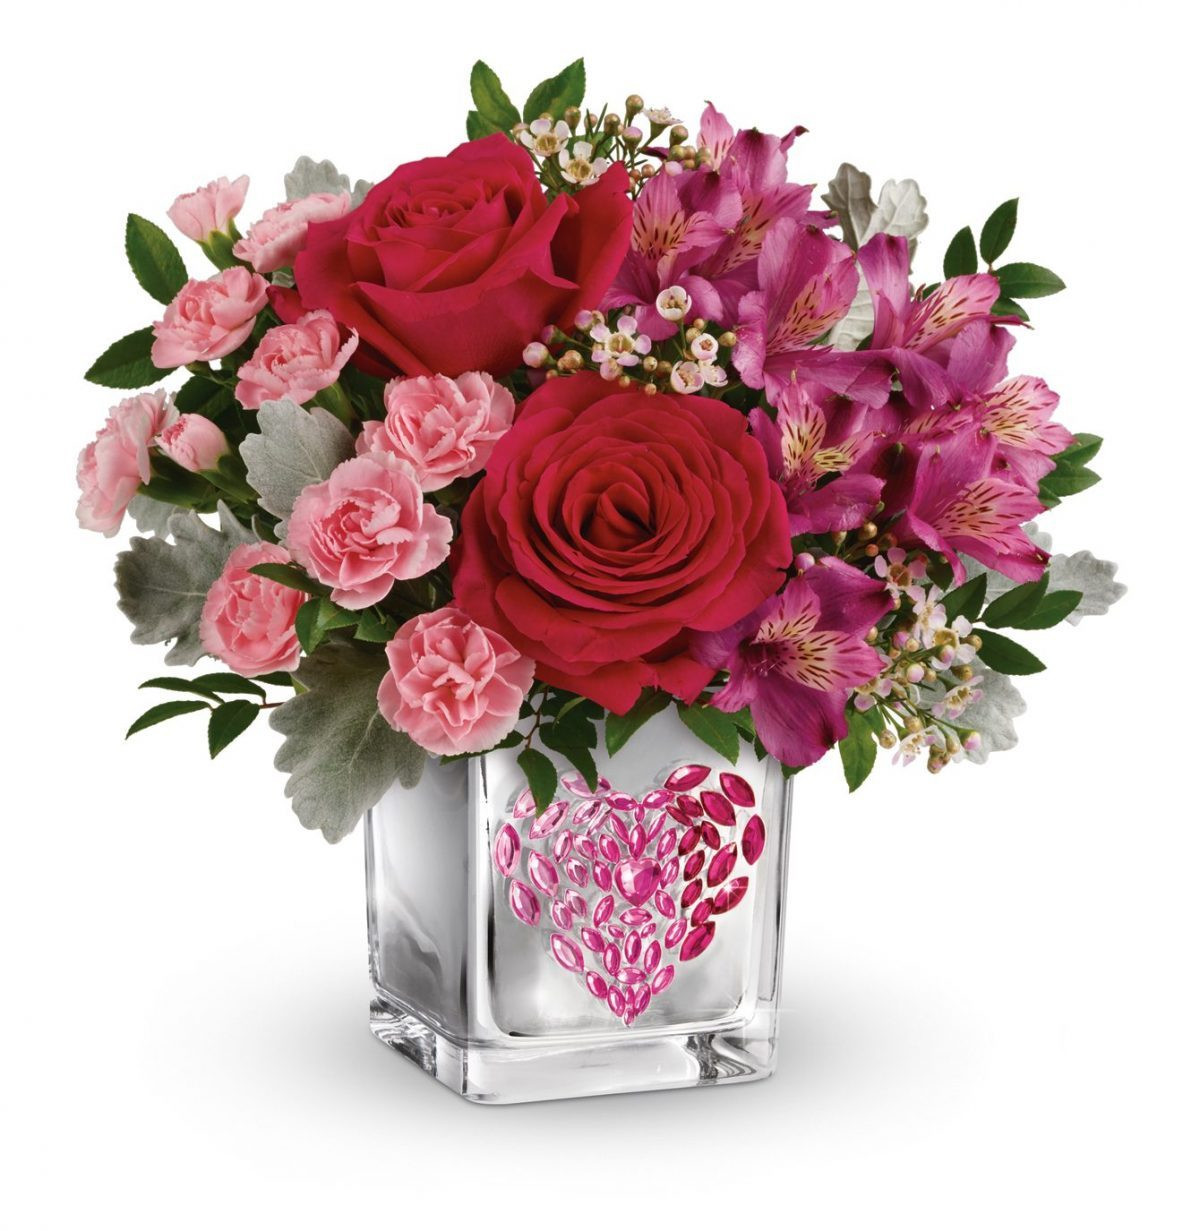 empty vase florist los angeles of celebrate with beautiful valentines flowers from teleflora with regard to young at heart bouquet